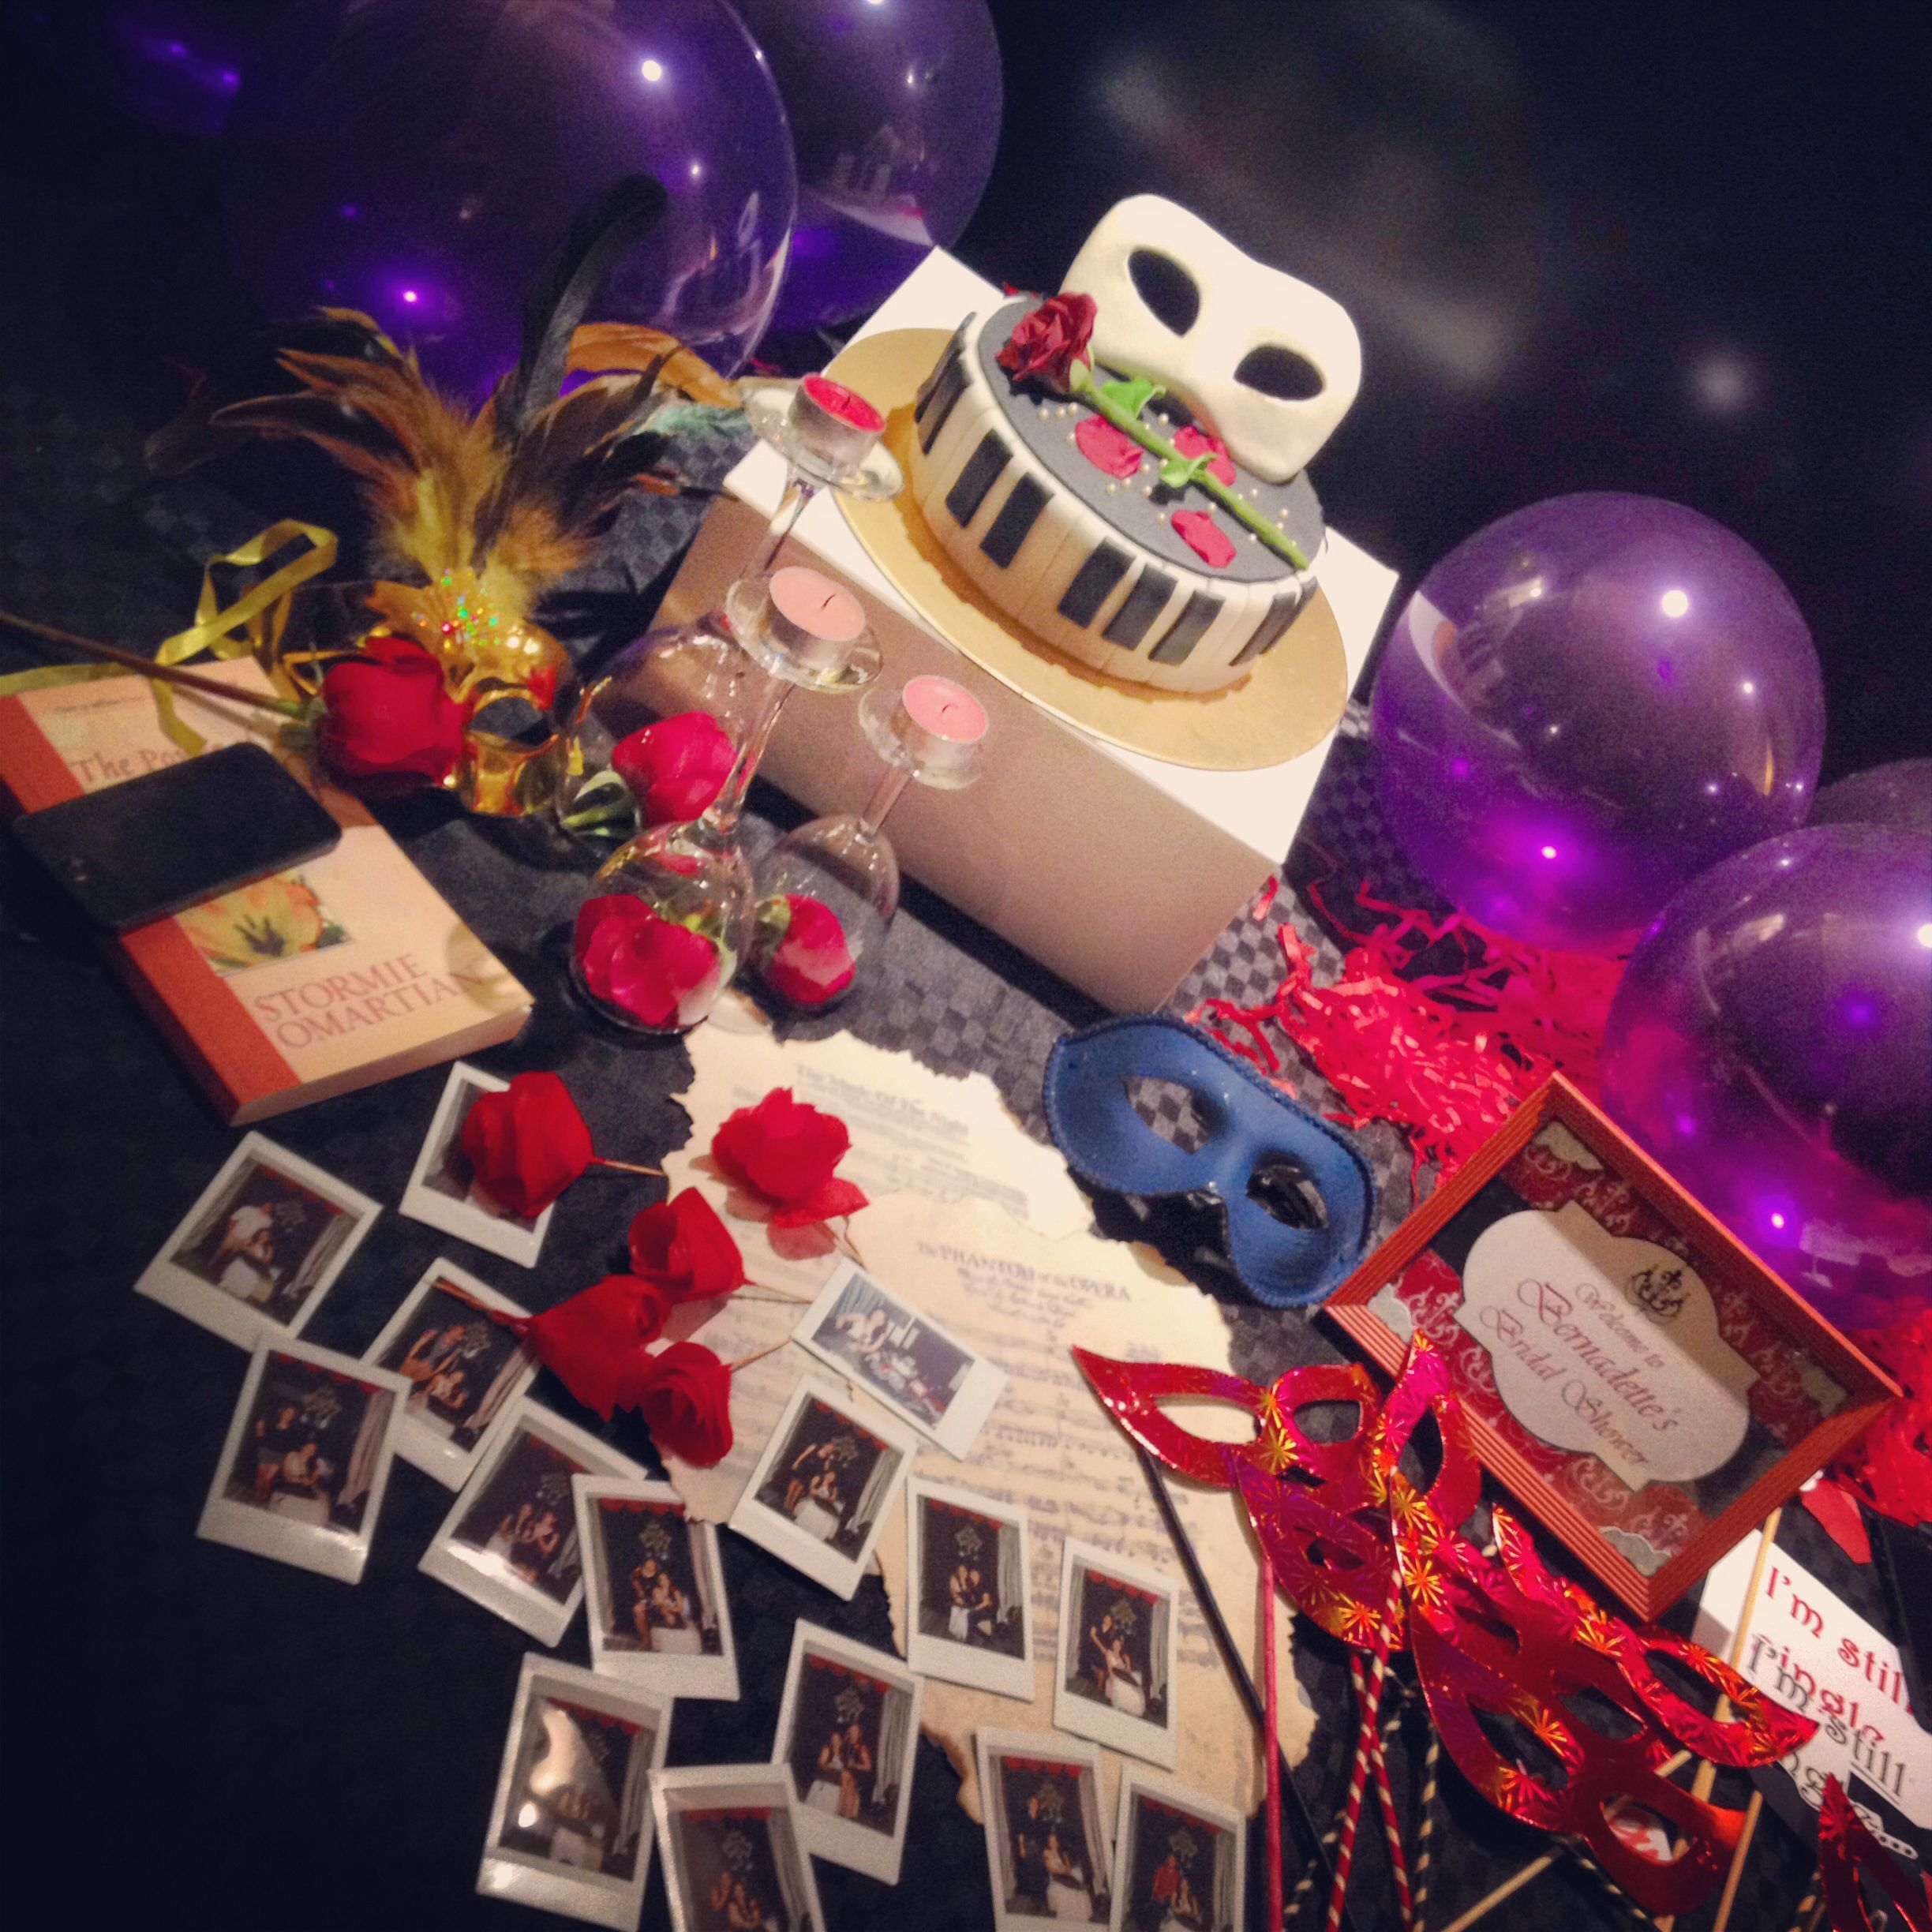 diy phantom of the opera themed bridal shower cake props souvenirs masks balloons instax for memories